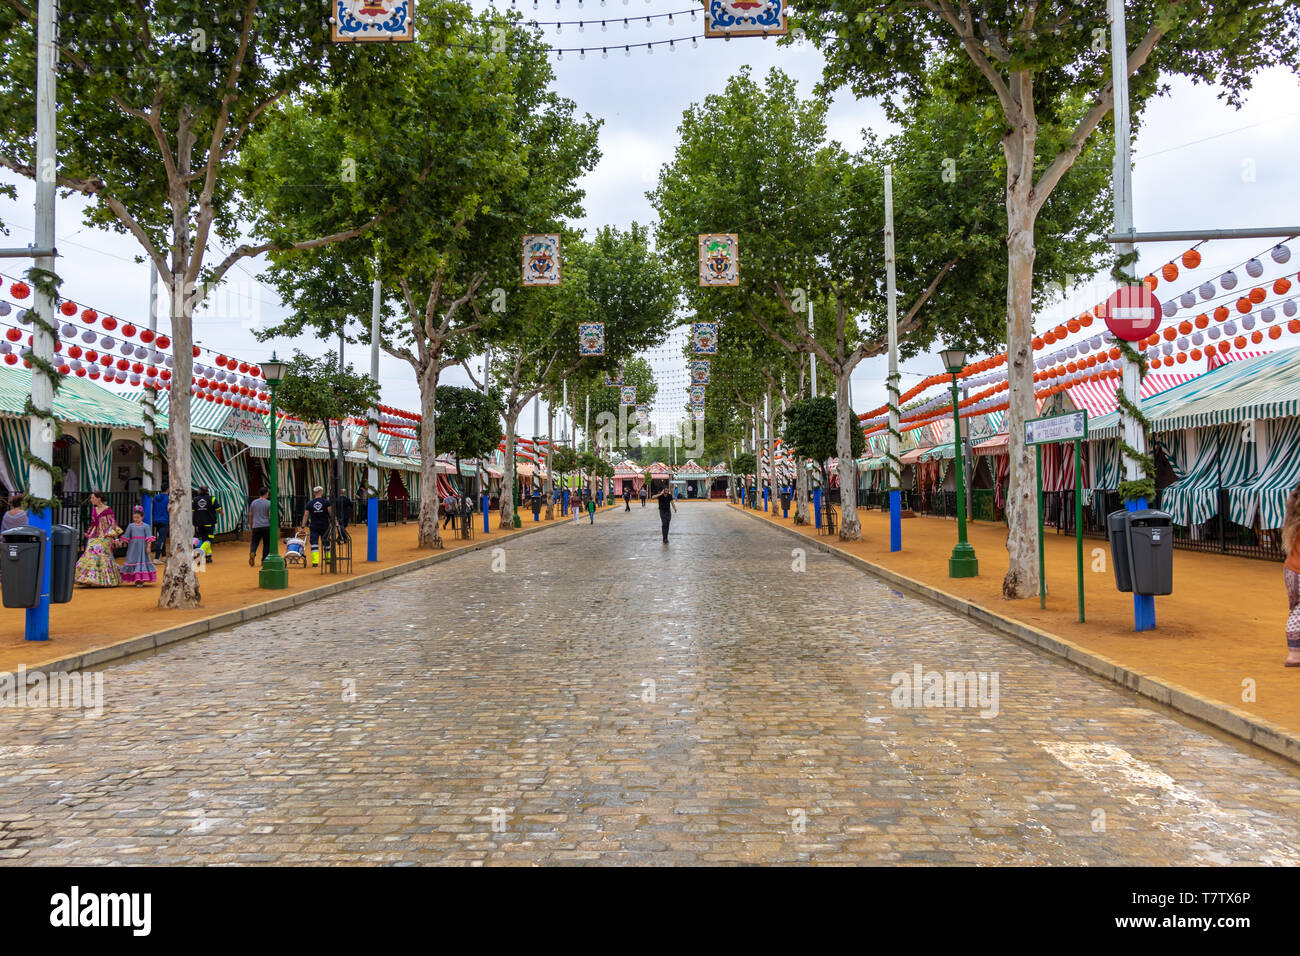 Seville, Spain - May 5, 2019: Almost empty street early in the morning during the the April Fair of Seville on May, 5, 2019 in Seville, Spain - Stock Image